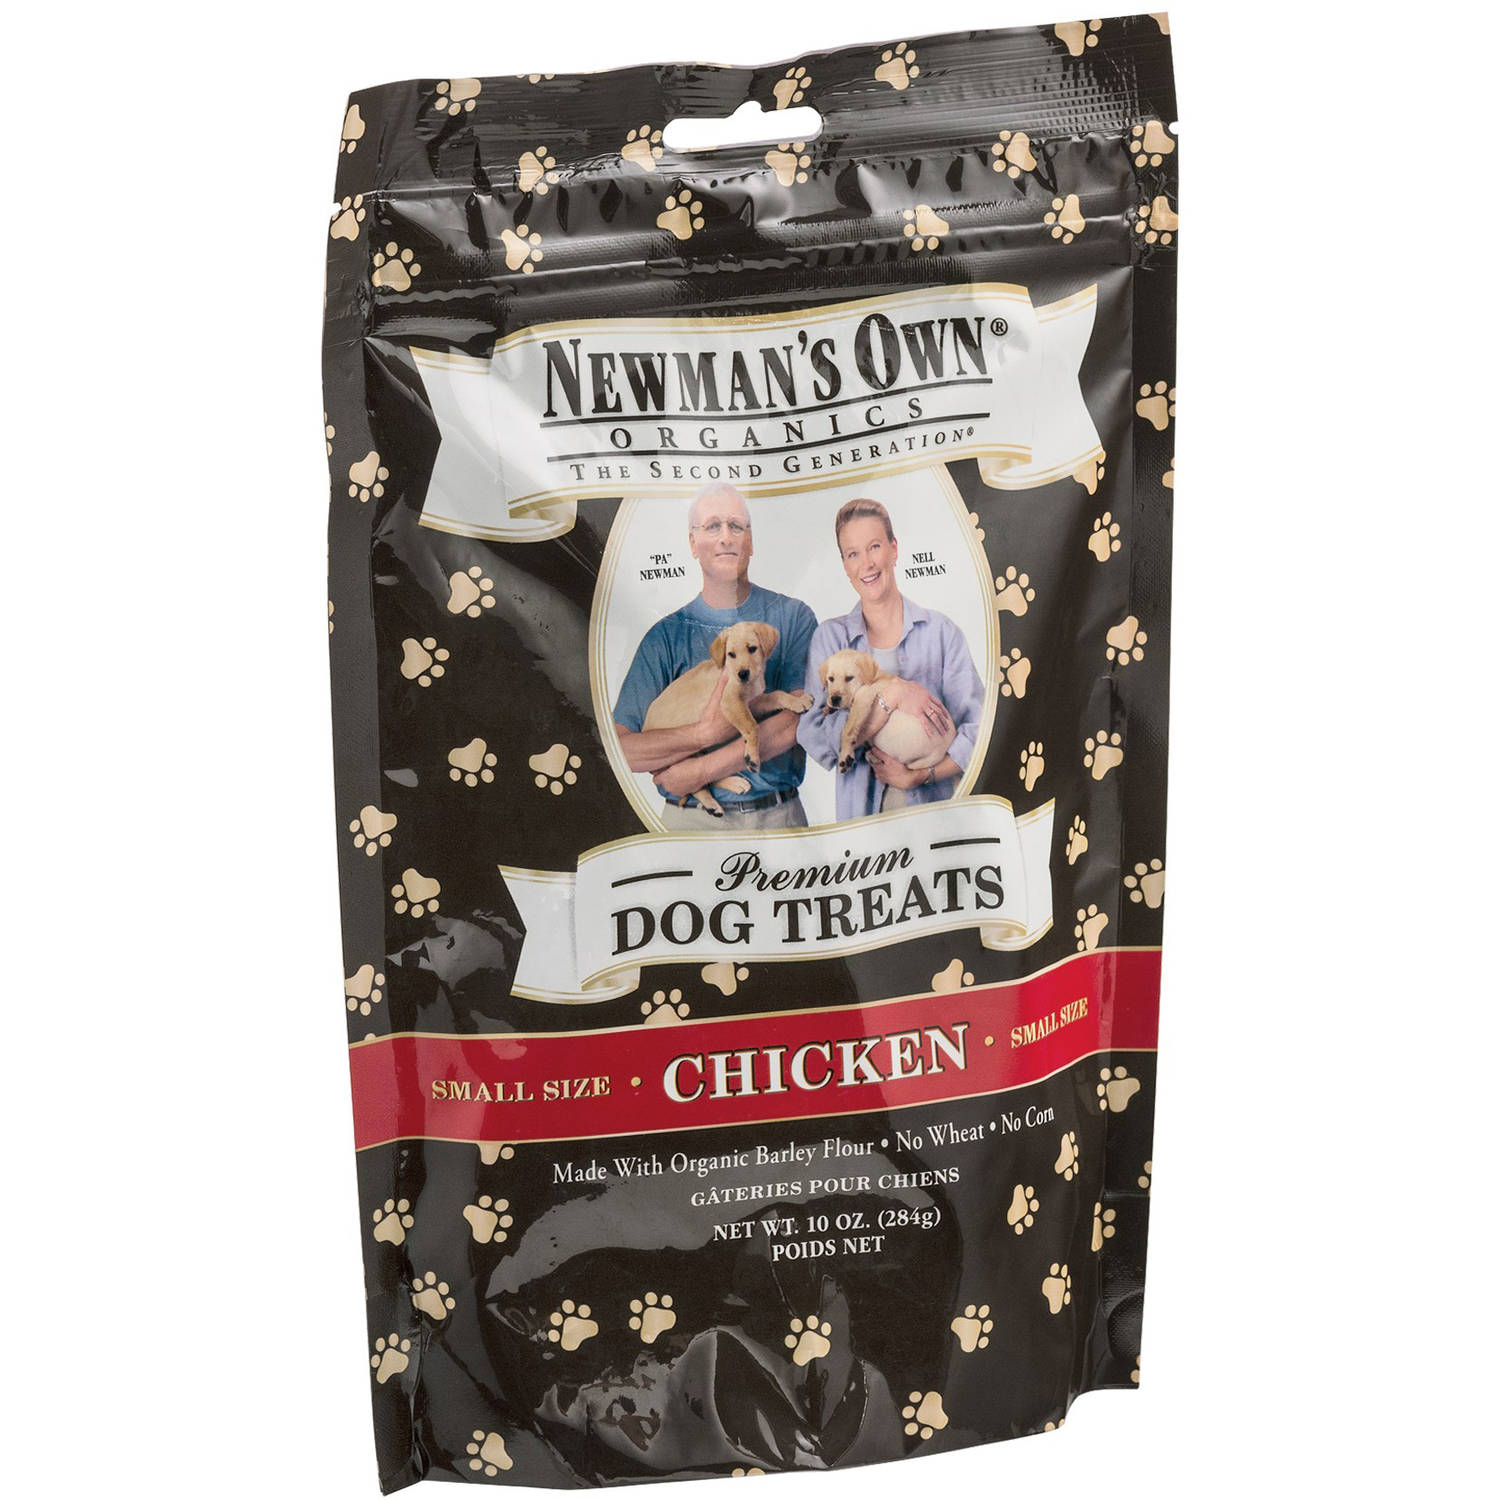 Newman's Own Dog Treats, Premium, Chicken, Small Size, 10 oz, 6-Pack